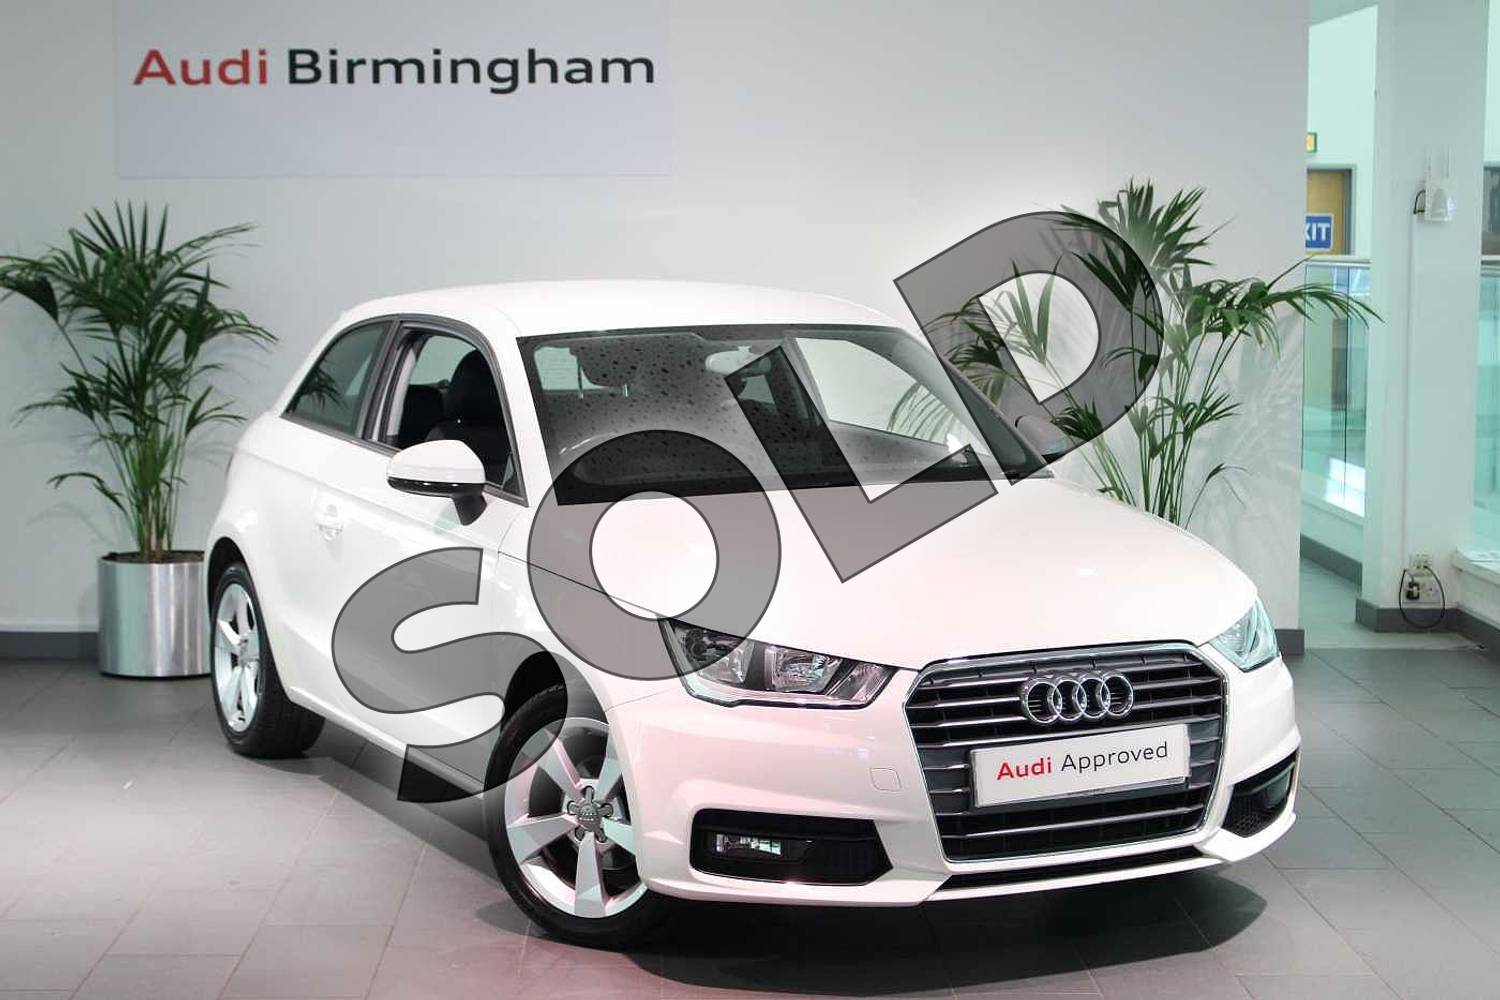 2017 Audi A1 Hatchback 1.0 TFSI Sport 3dr in Shell White at Birmingham Audi